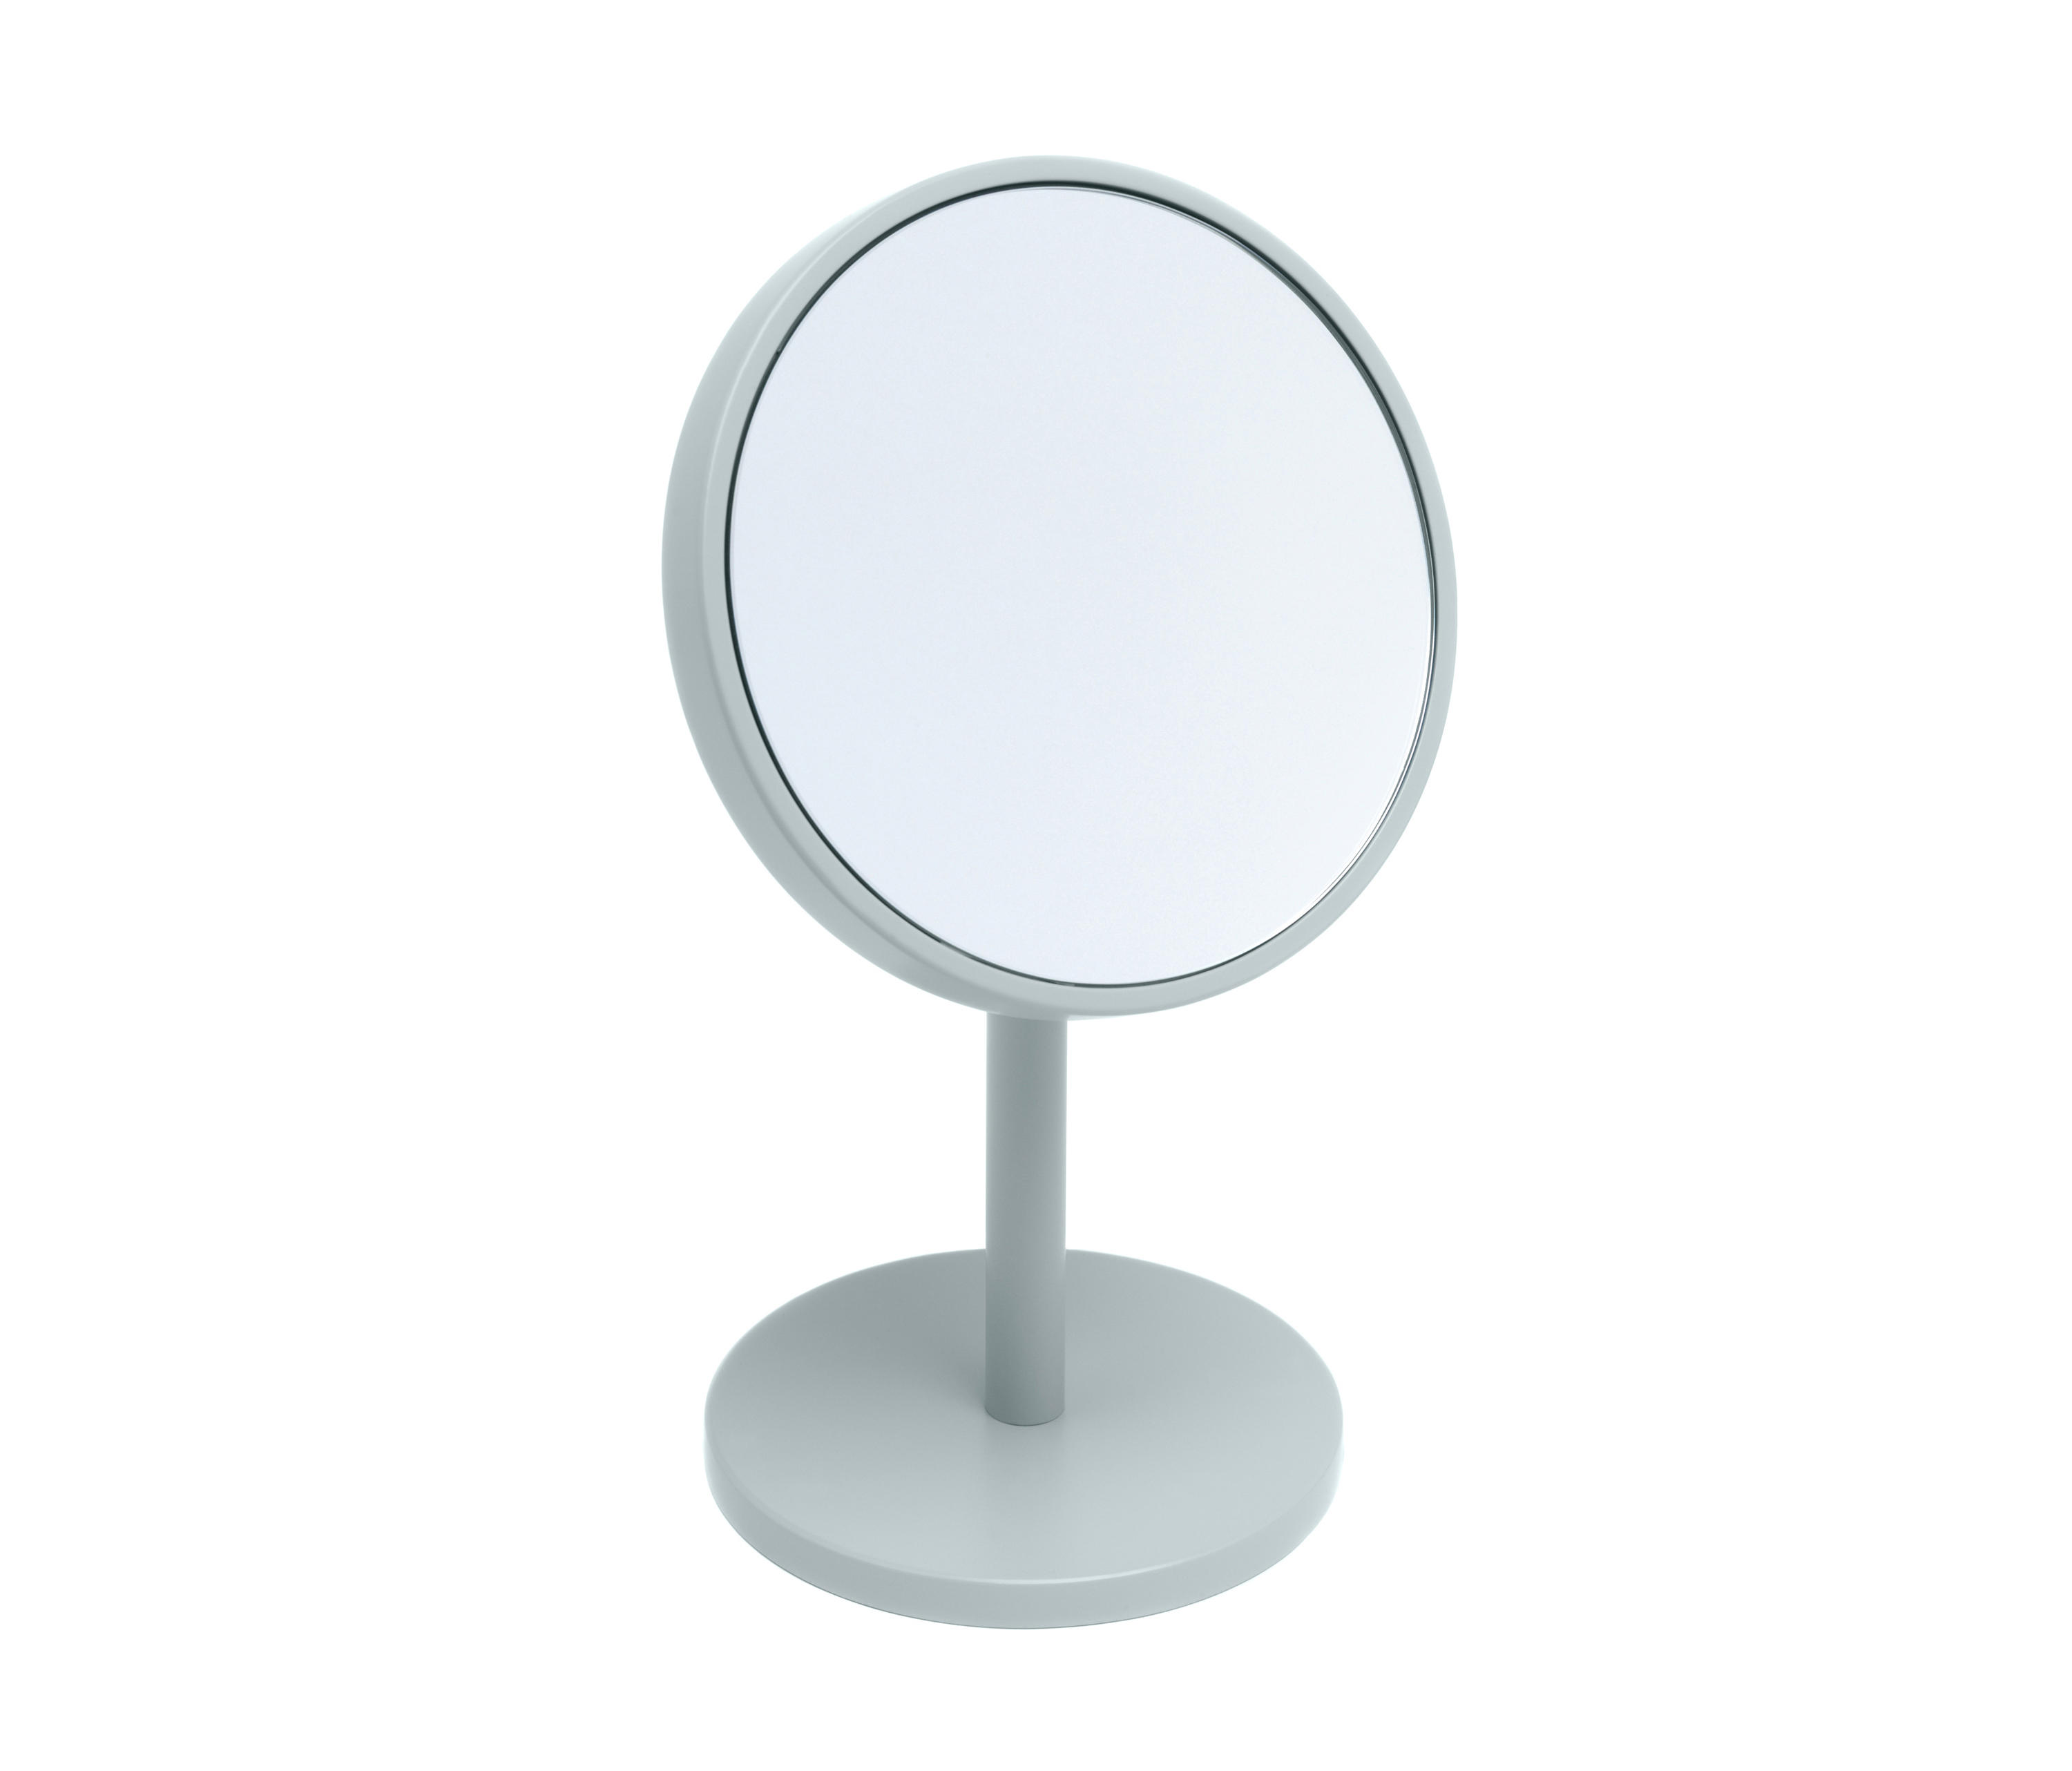 beauty standalone mirror  mirrors from schönbuch  architonic -  beauty standalone mirror by schönbuch  mirrors